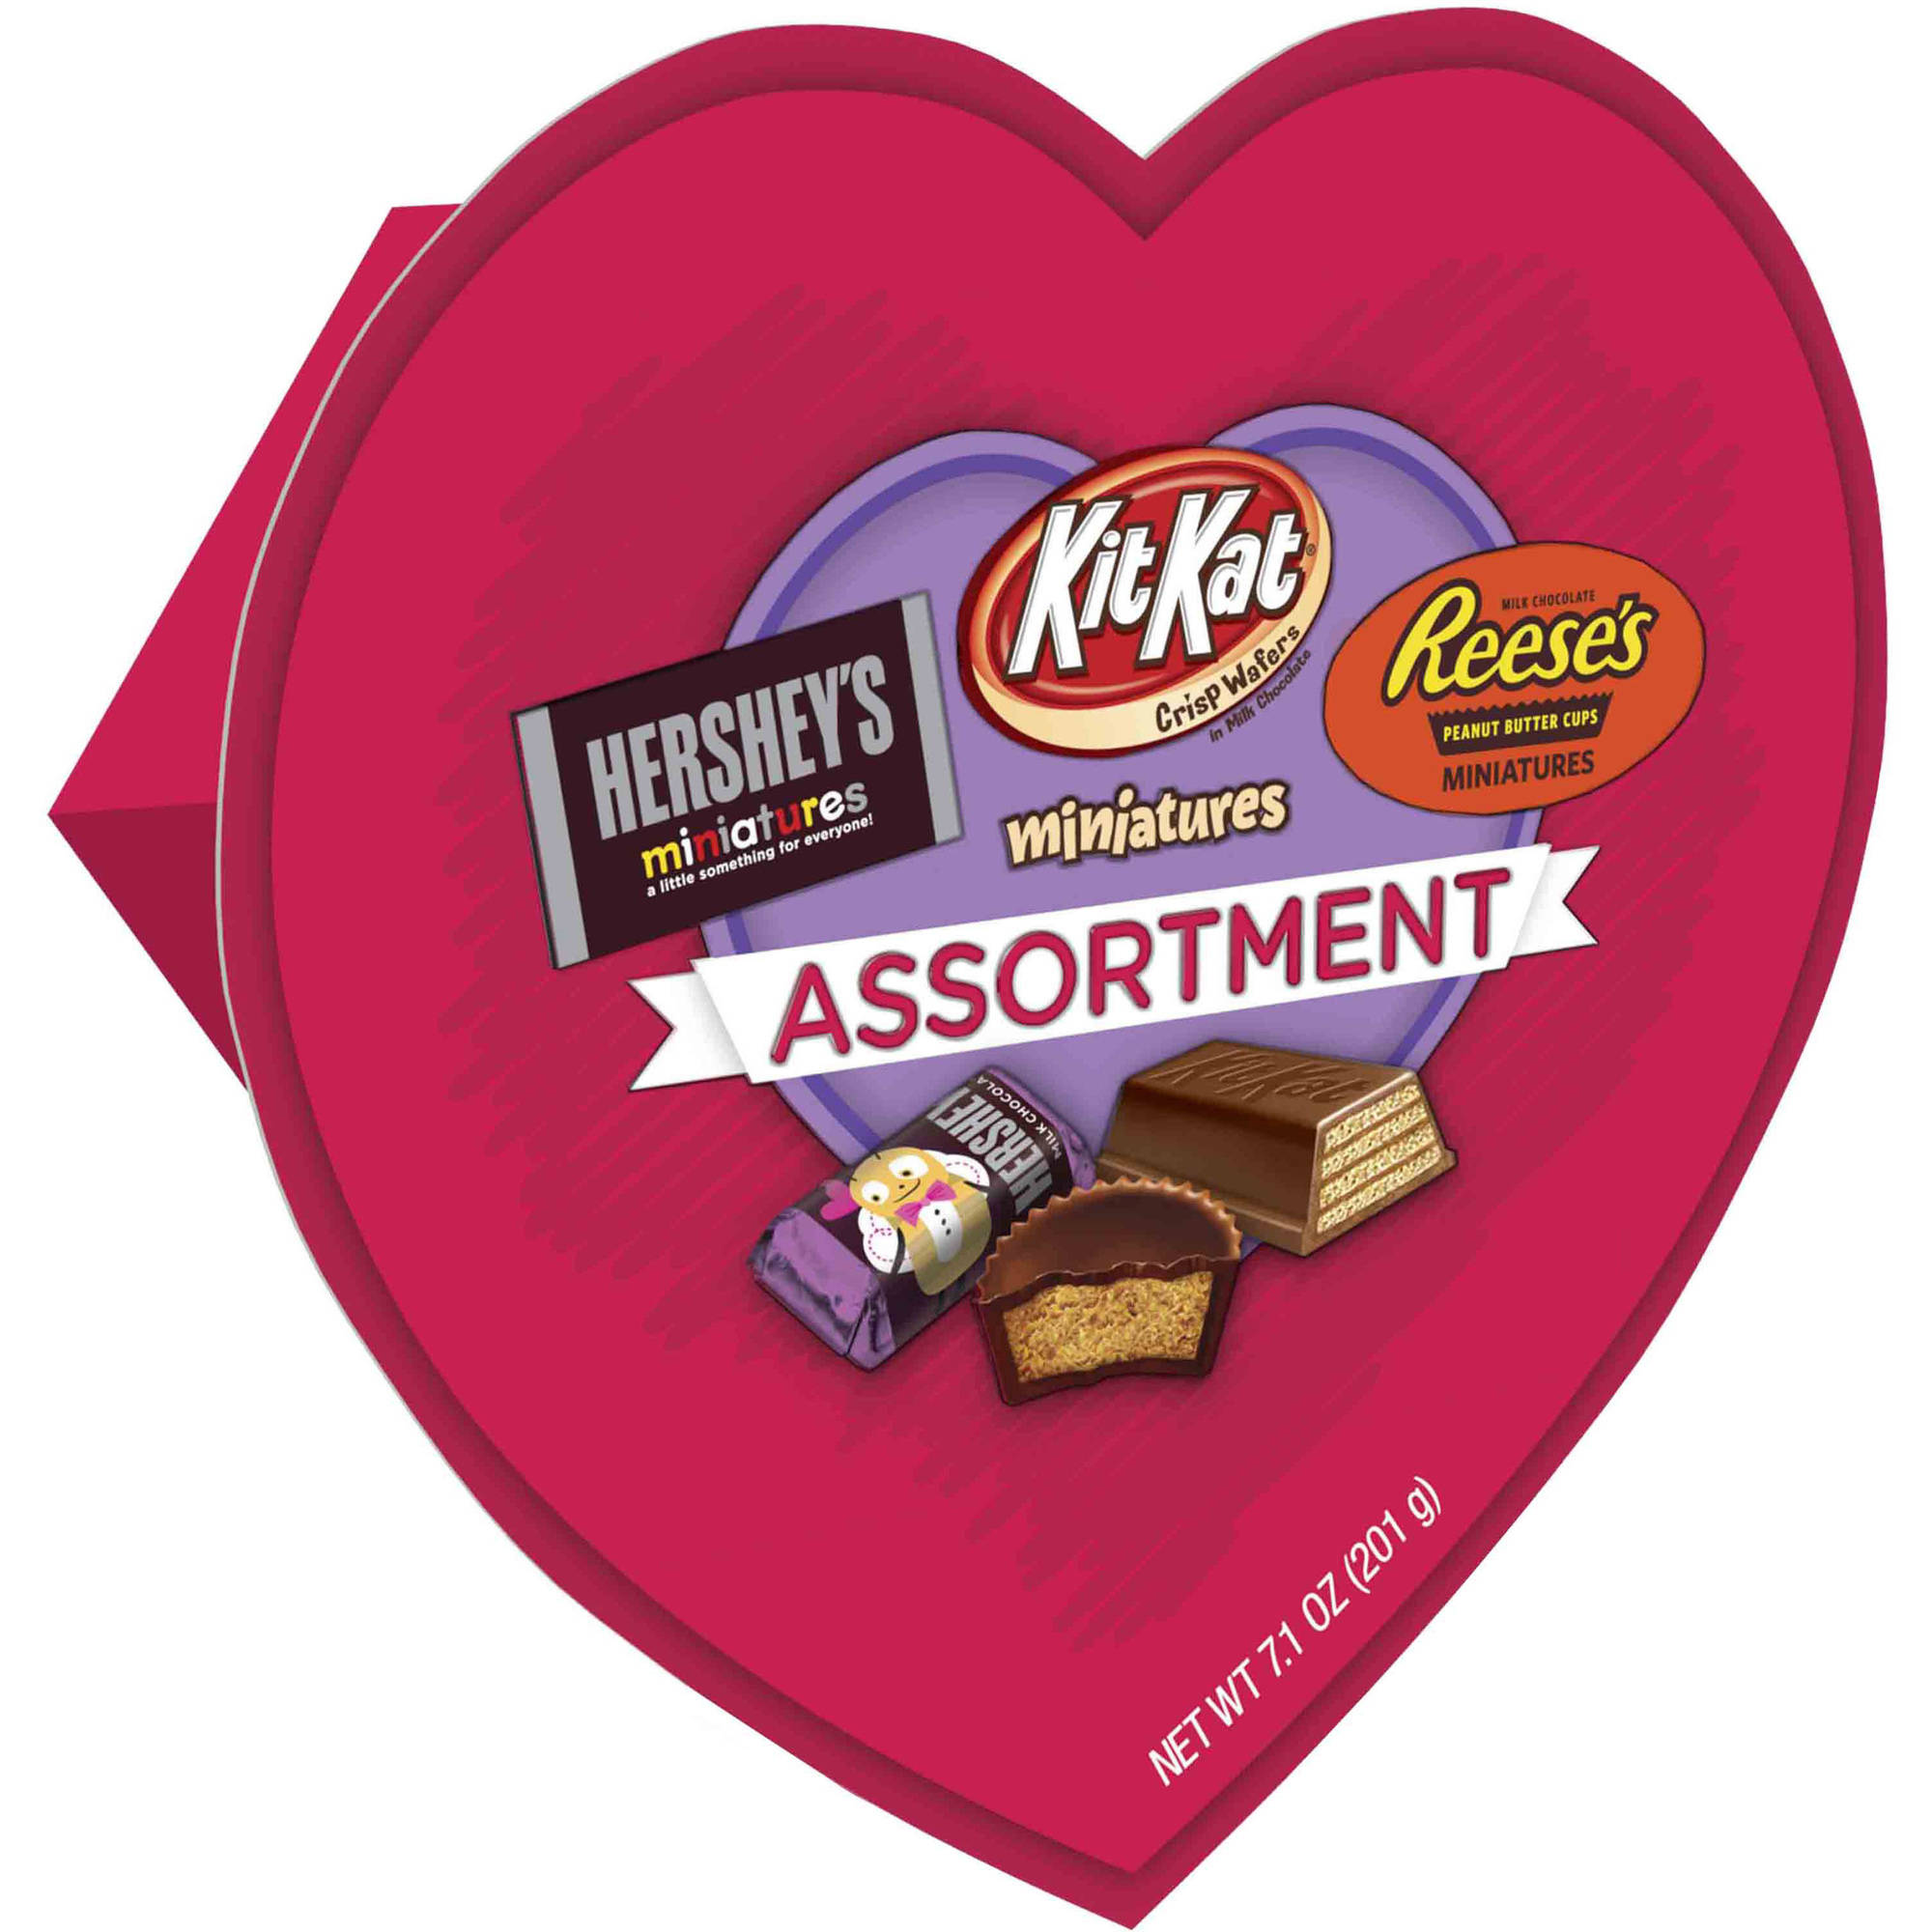 Hershey's Valentine's Candy Assortment Heart Box, 7.1 oz